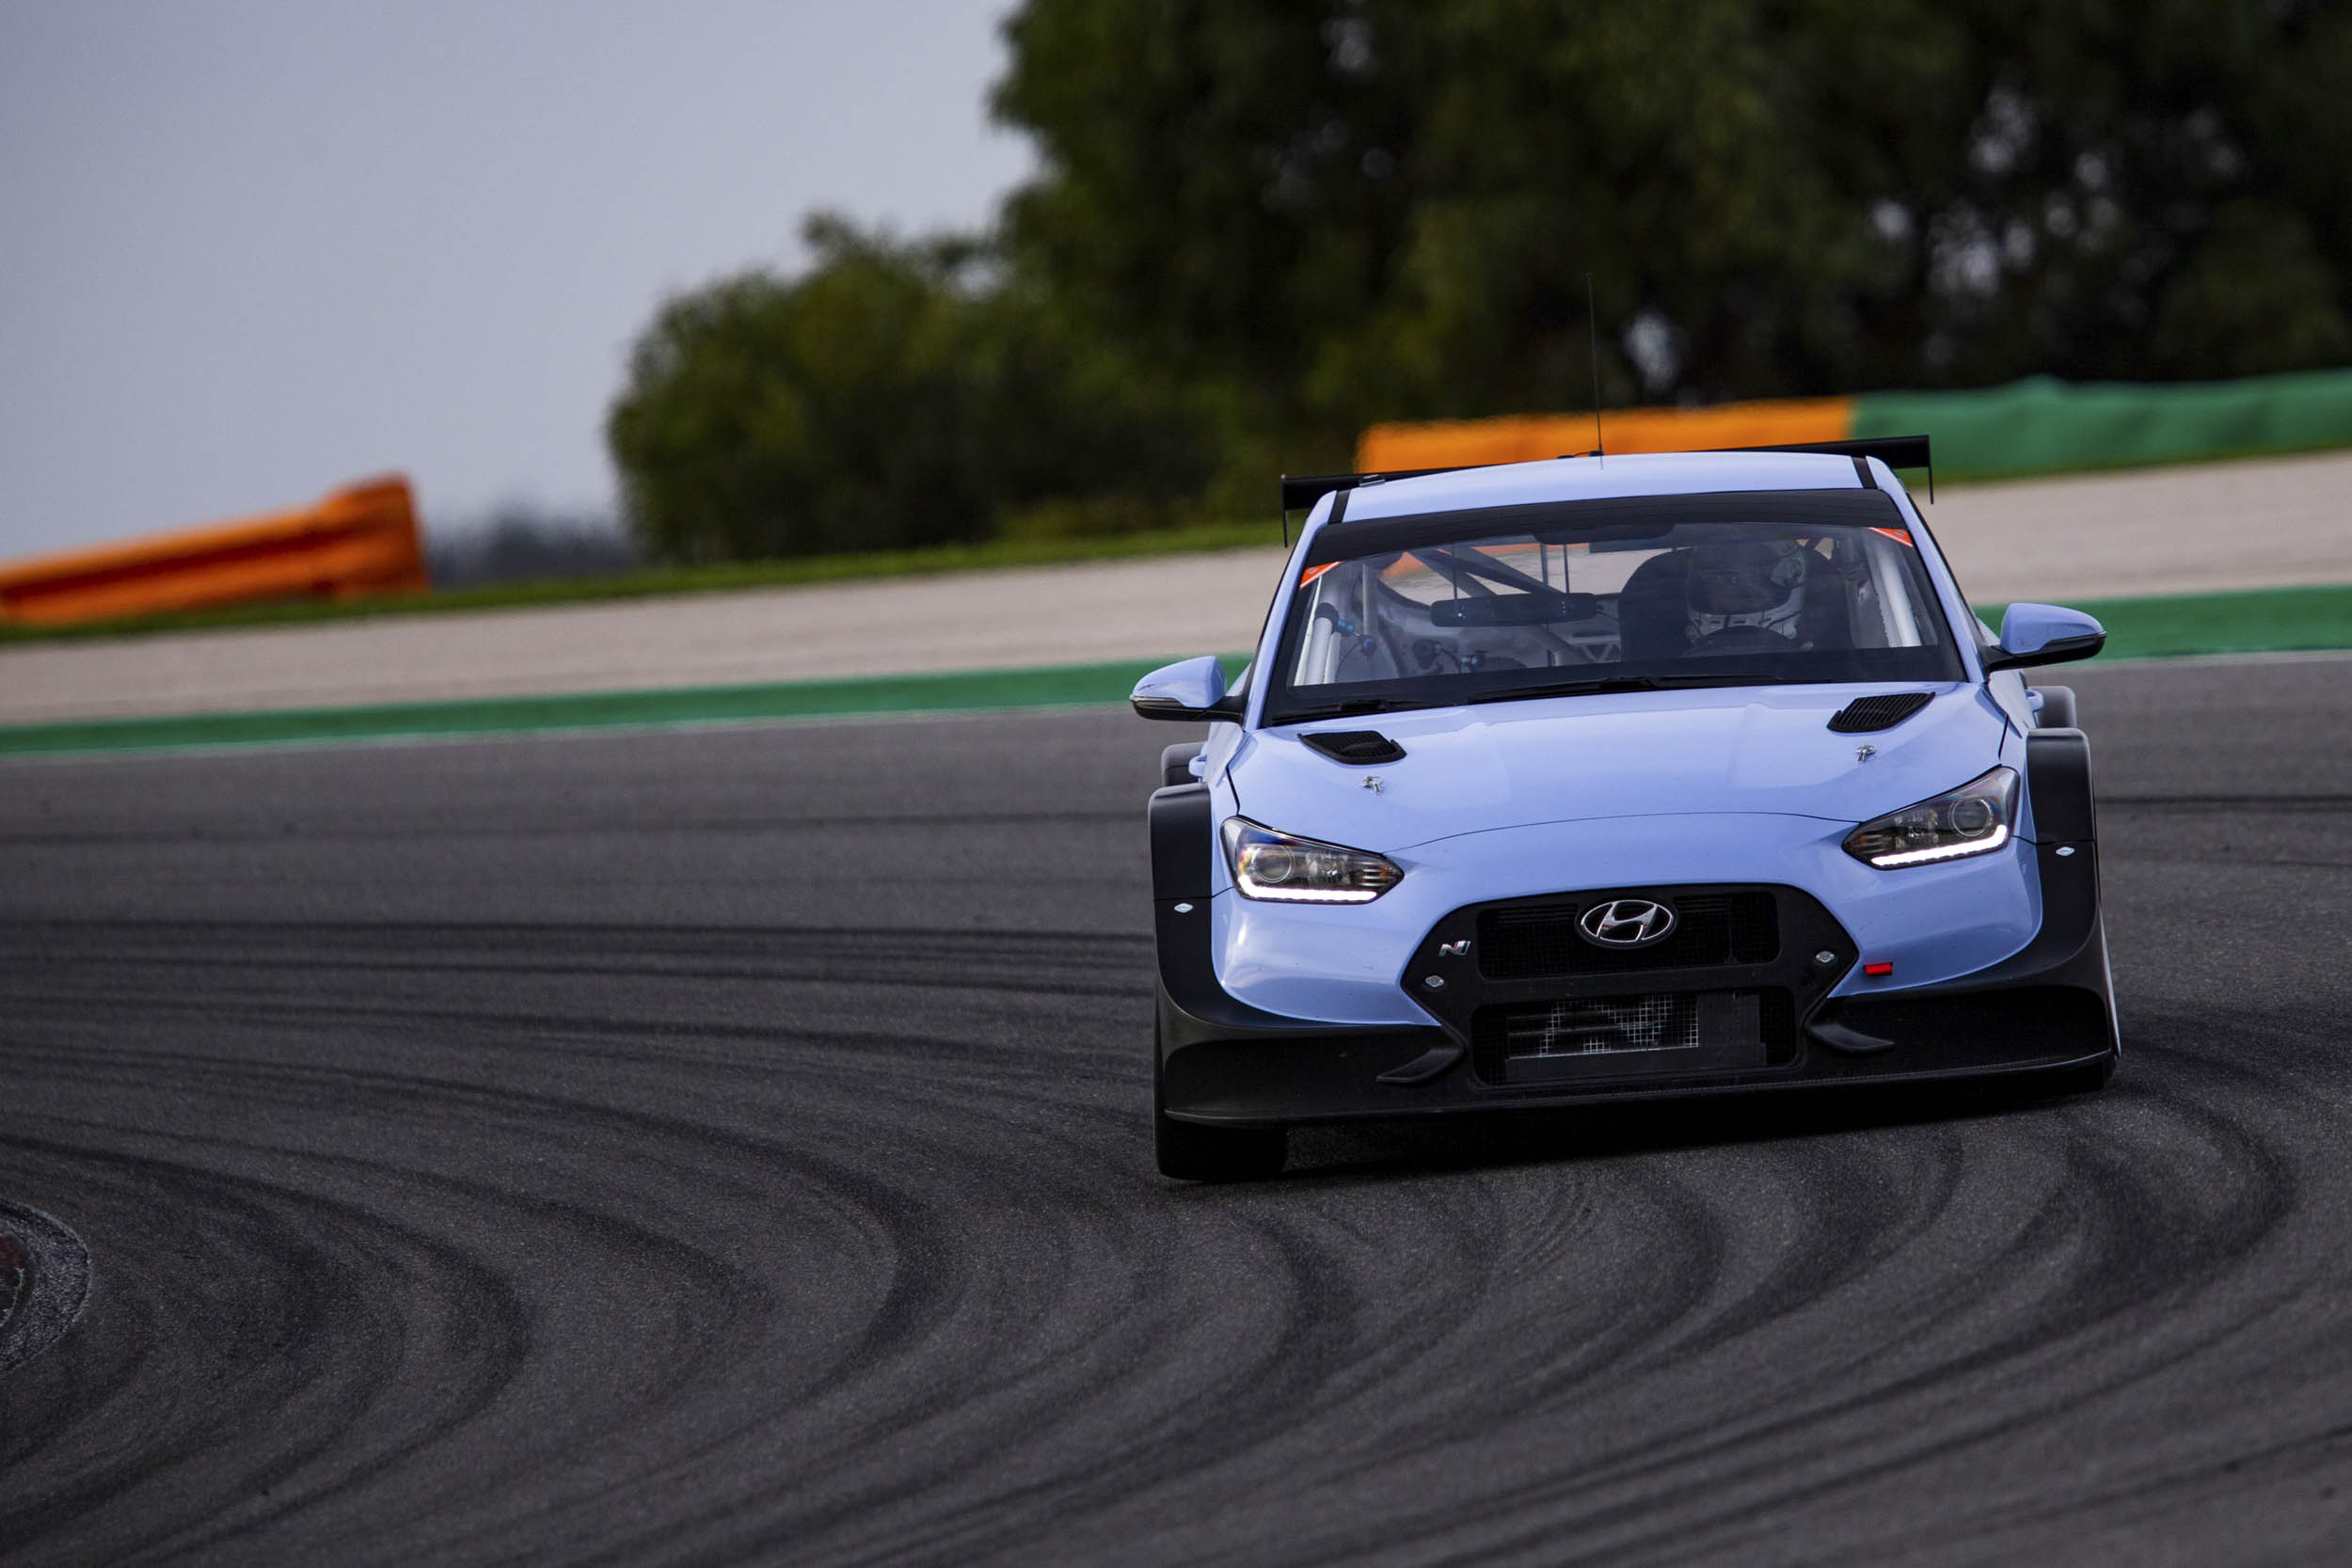 Hyundai Veloster N TCR on the track